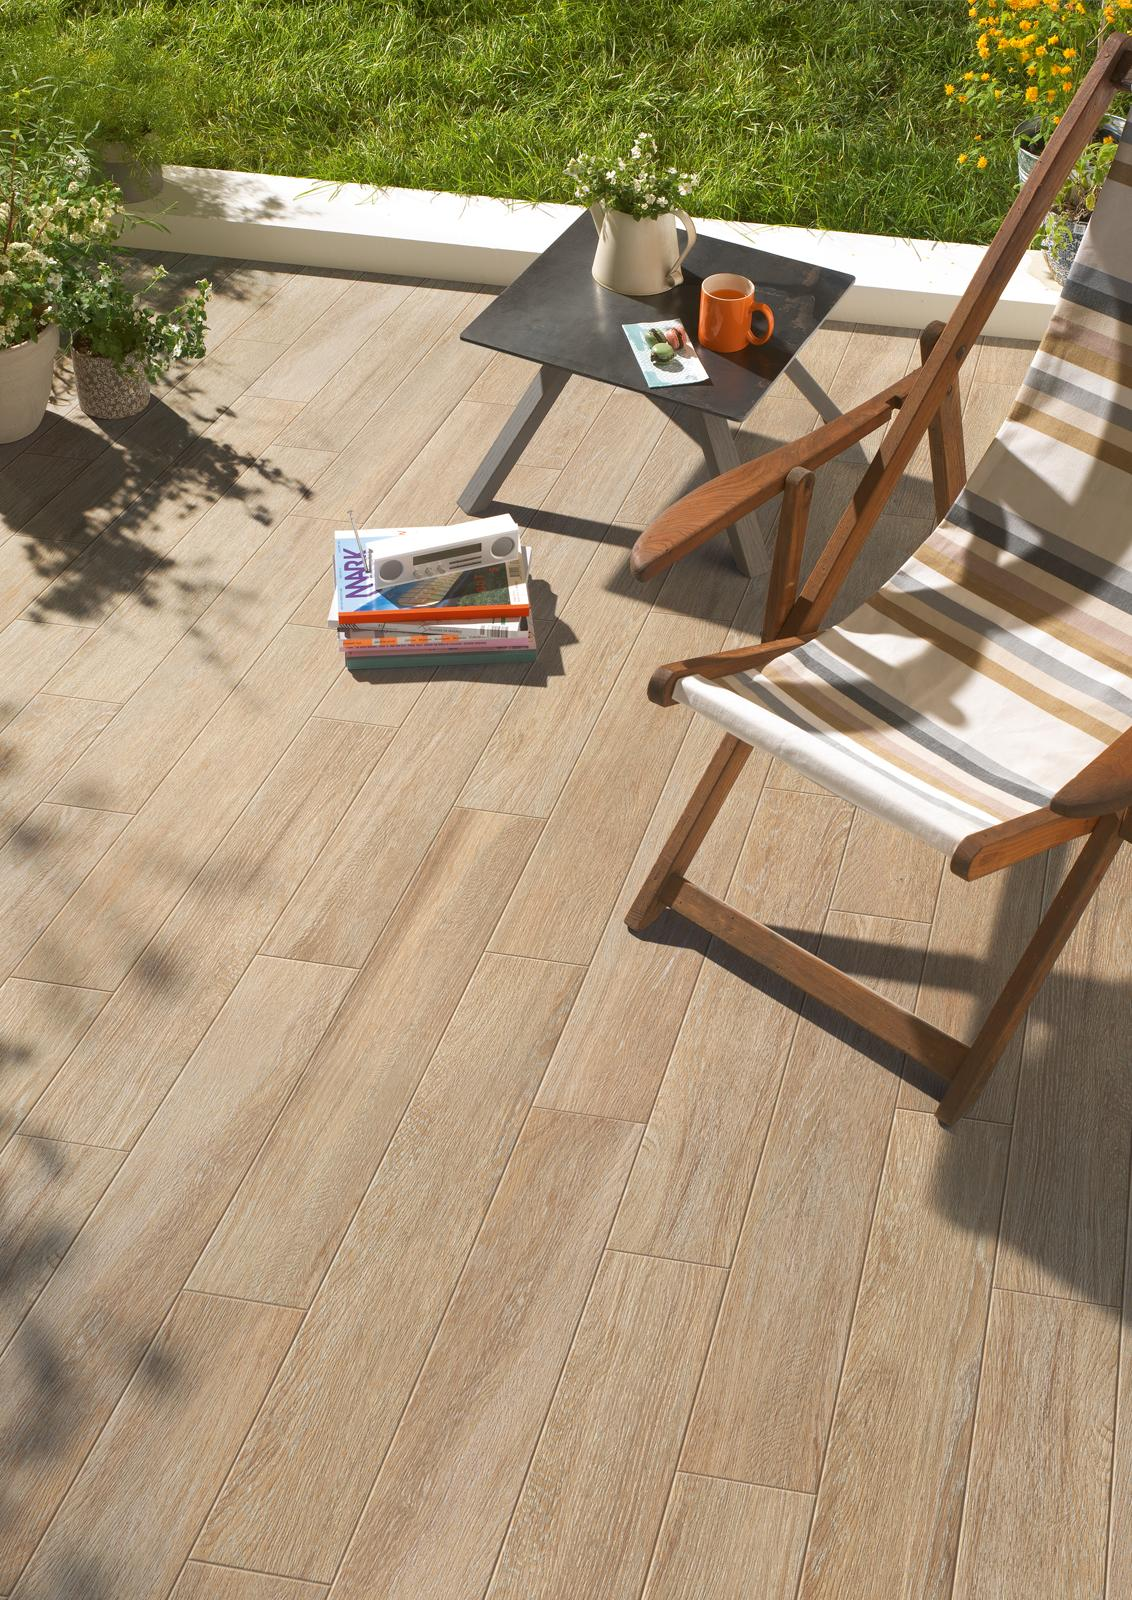 Planet - Wood Effect - Outdoor